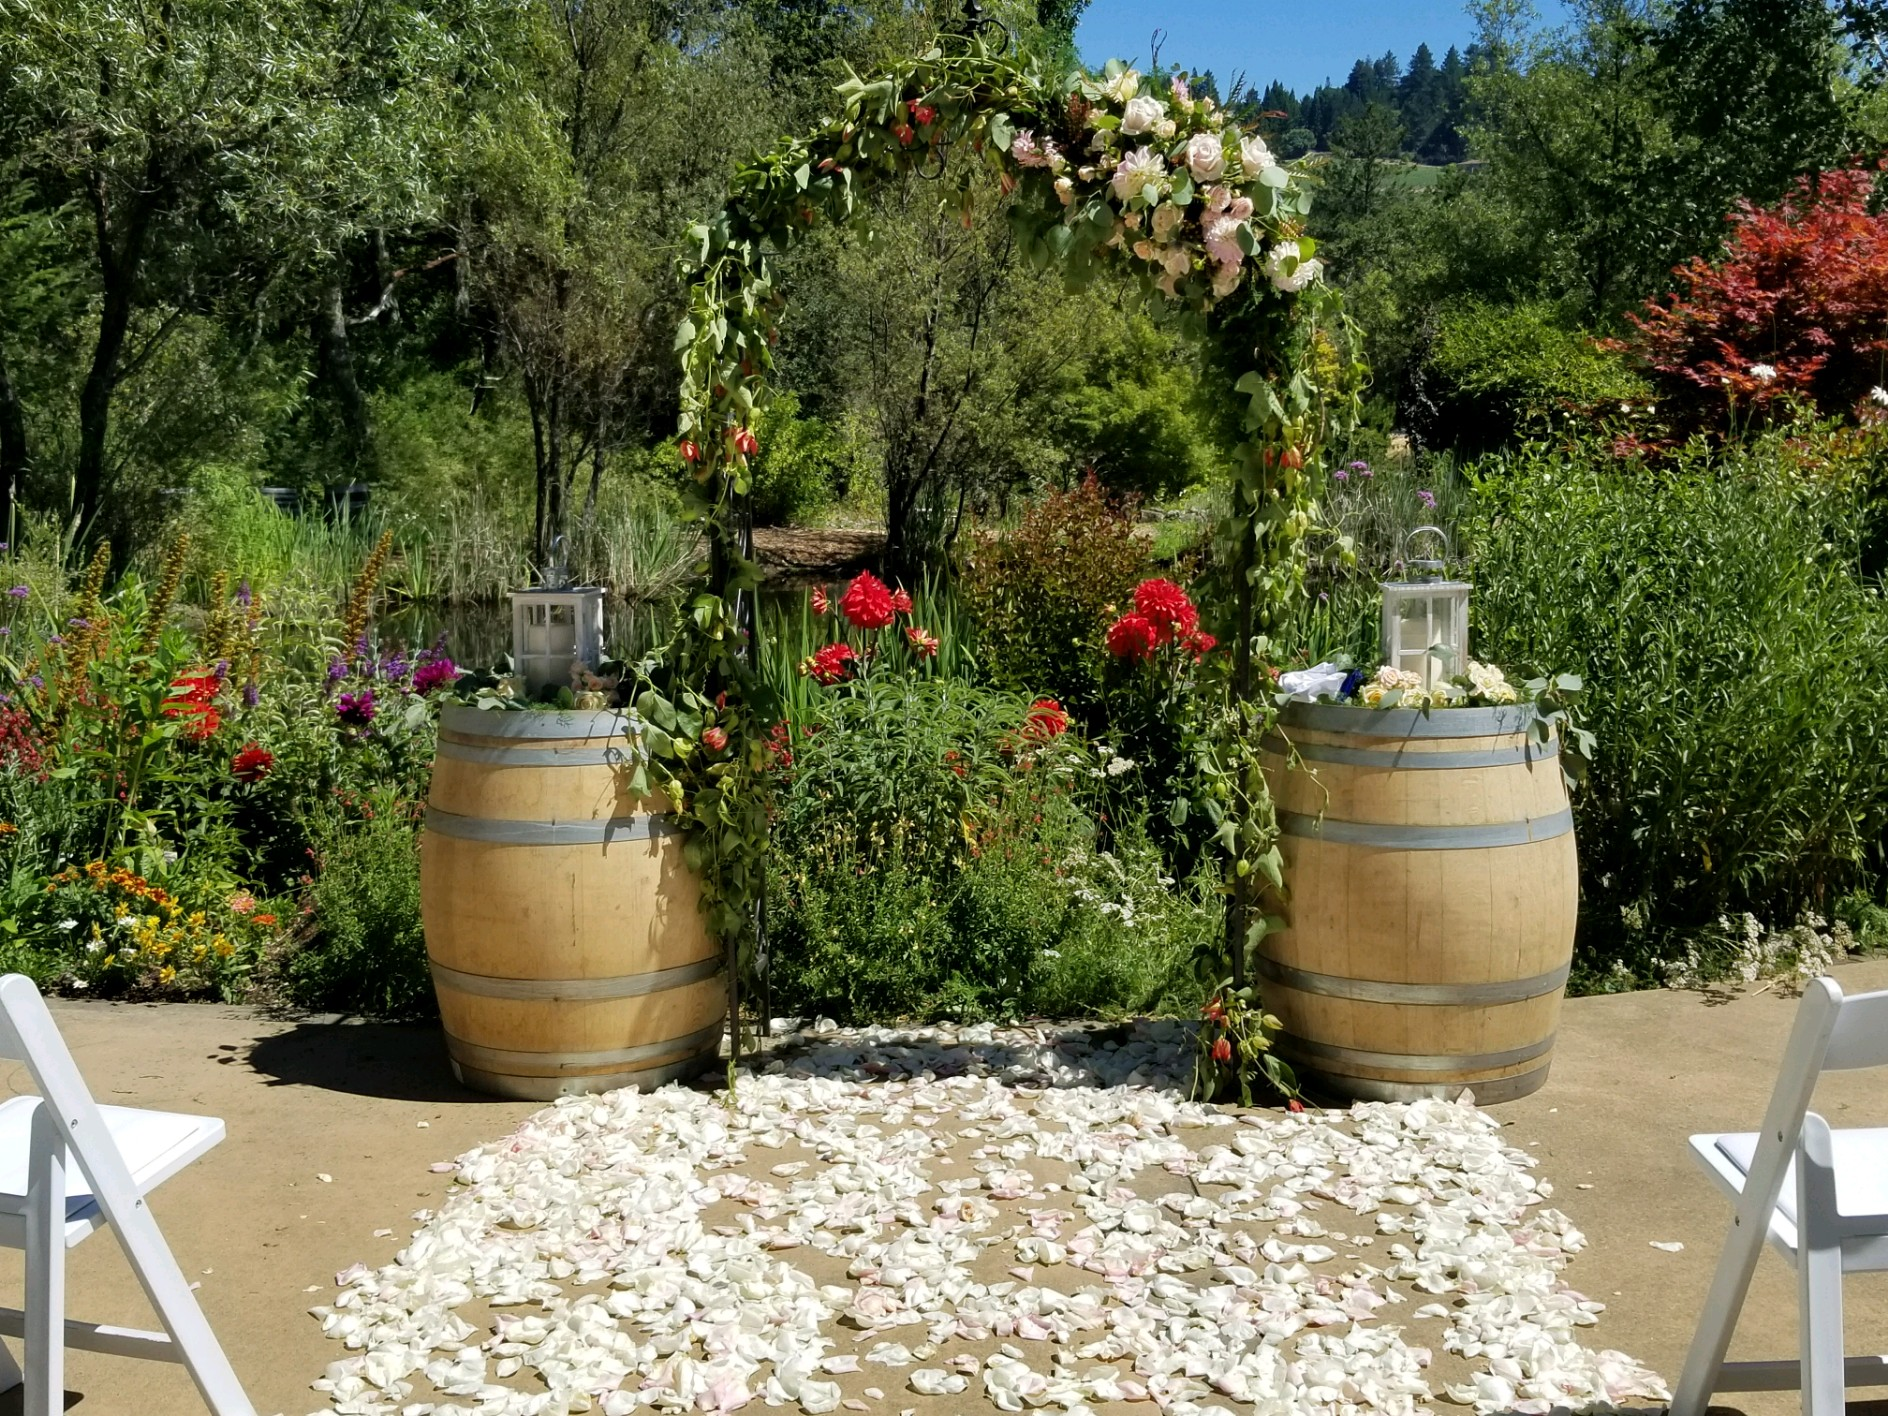 Hans Fahden wedding ceremony, rustic arch flowing with greens and flowers. Wine barrel toppers include large lanterns with floral wreath. Petals mark the aisle for the bride and groom.